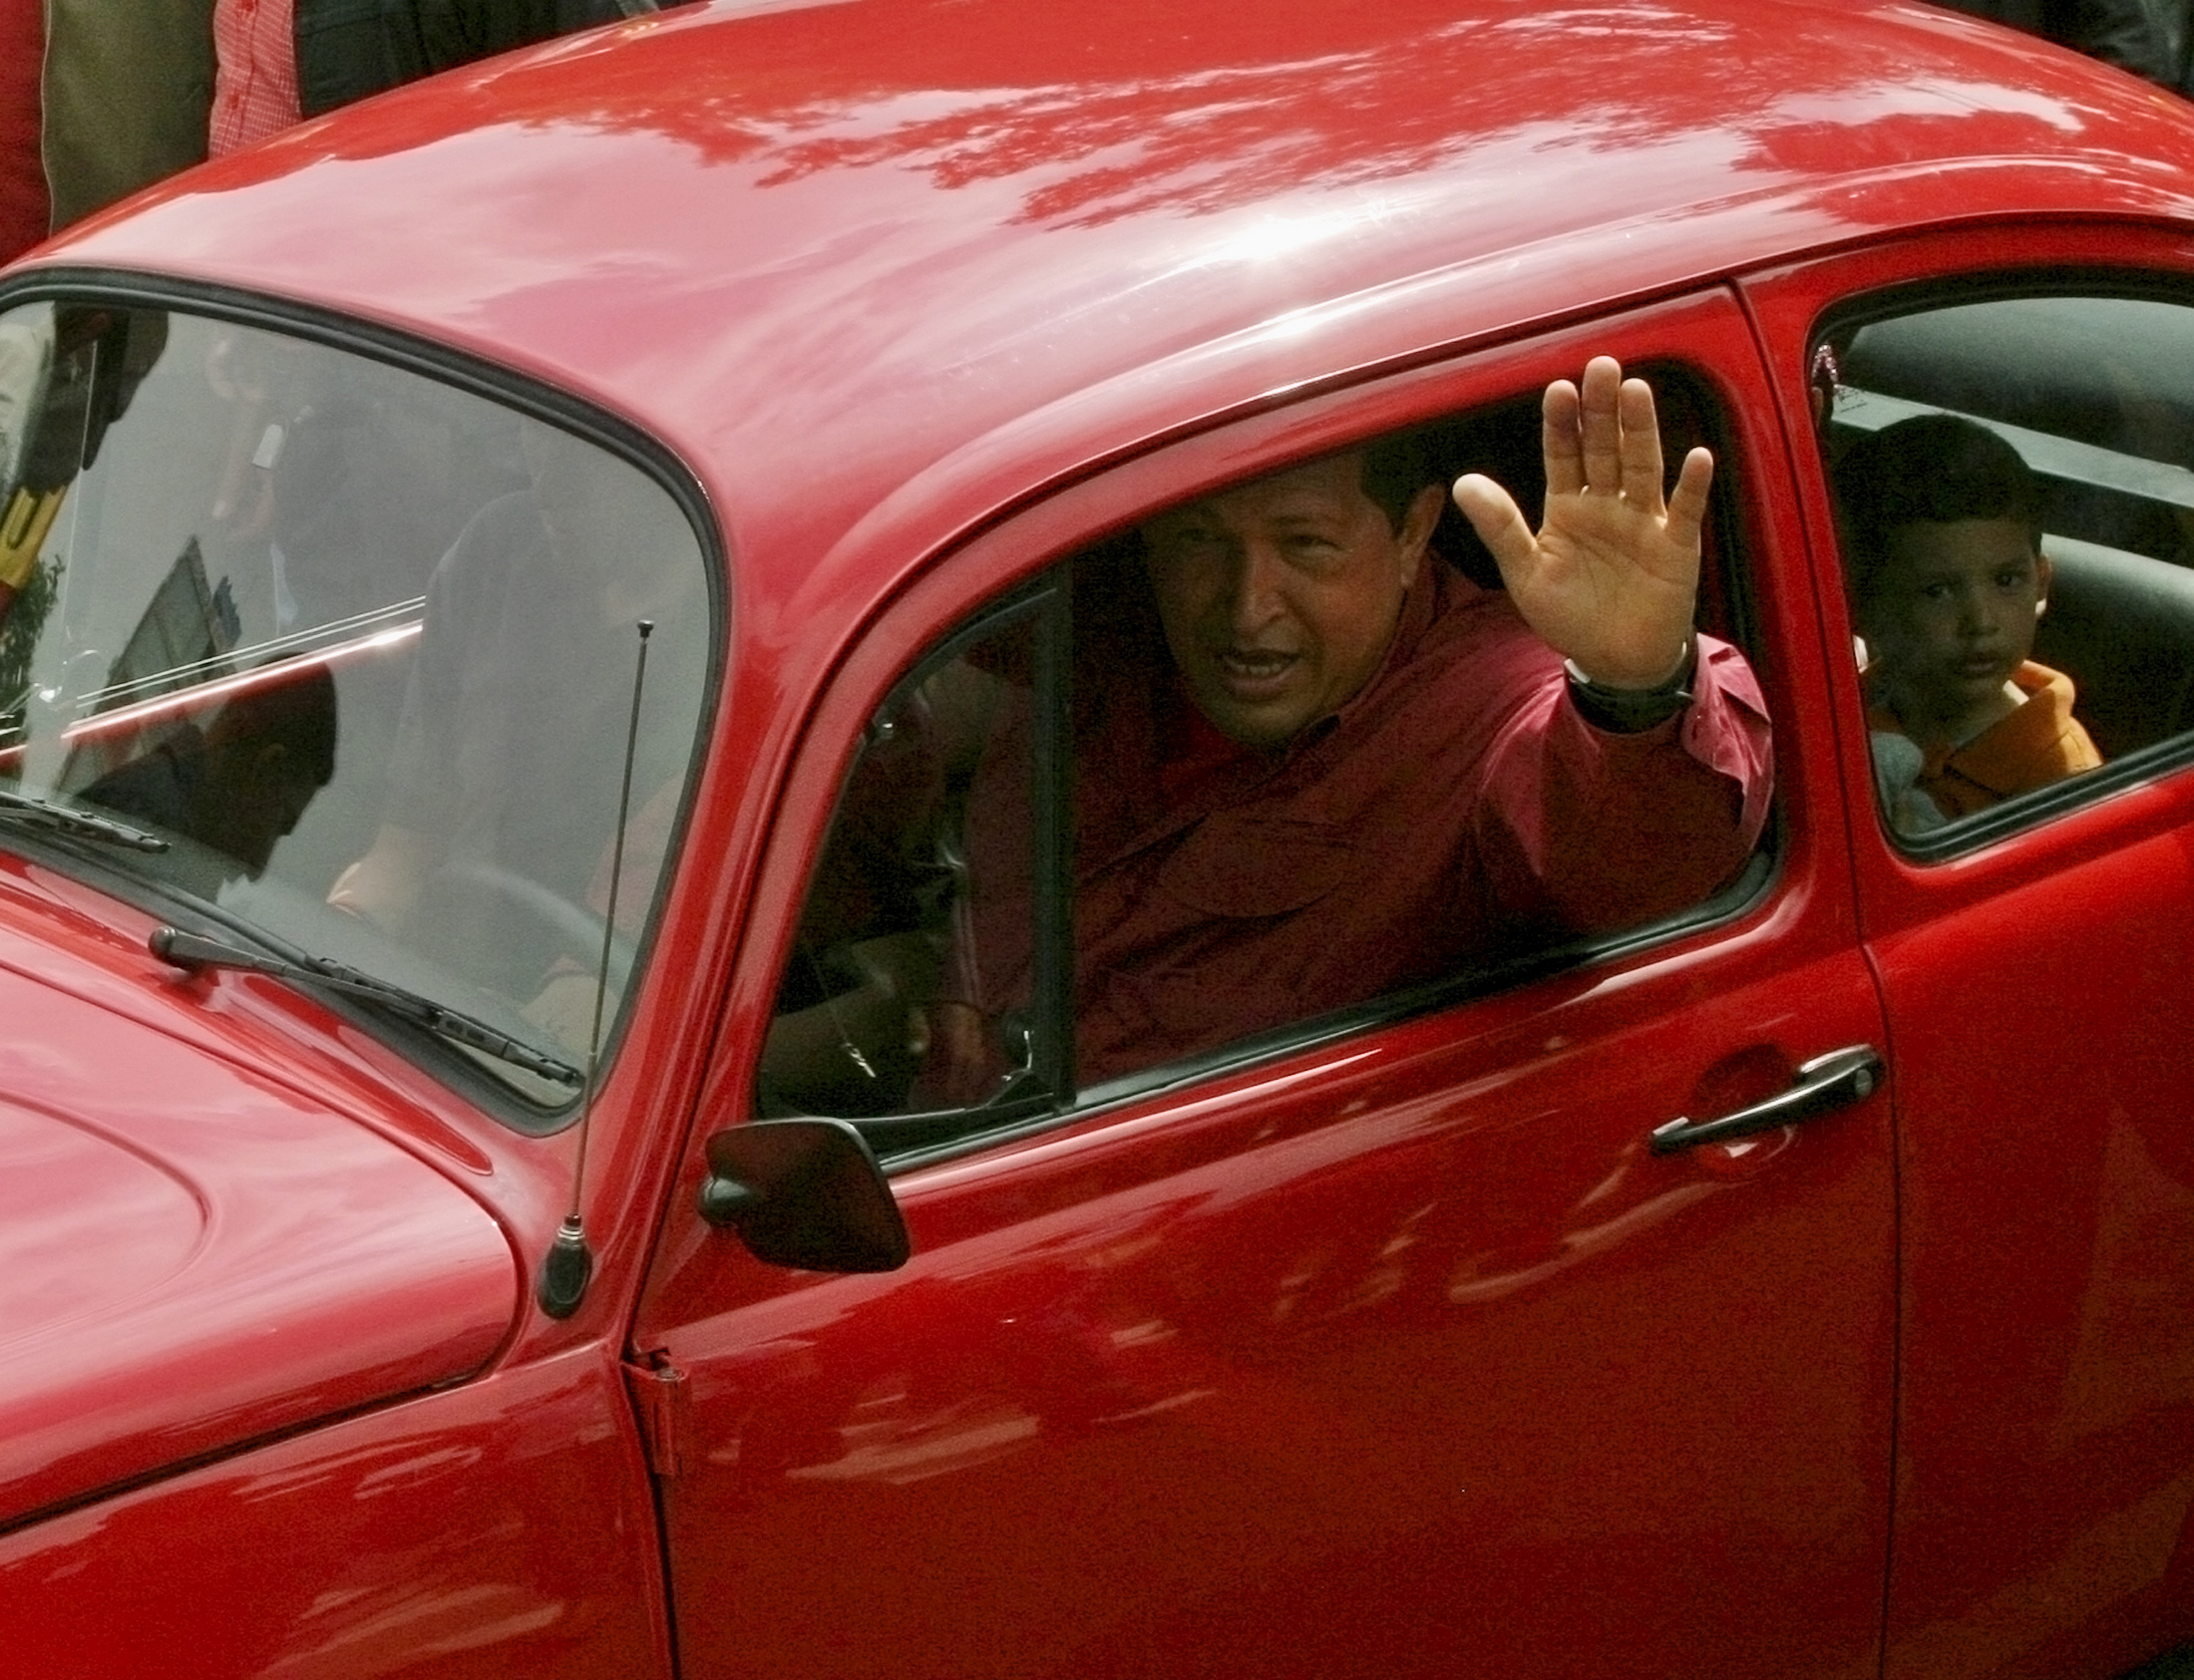 Venezuelan President Hugo Chavez drives his grandson Manuel away in a Volkswagen Beetle after voting in the presidential election at a school in Caracas December 3, 2006. ©REUTERS/Edwin Montilva